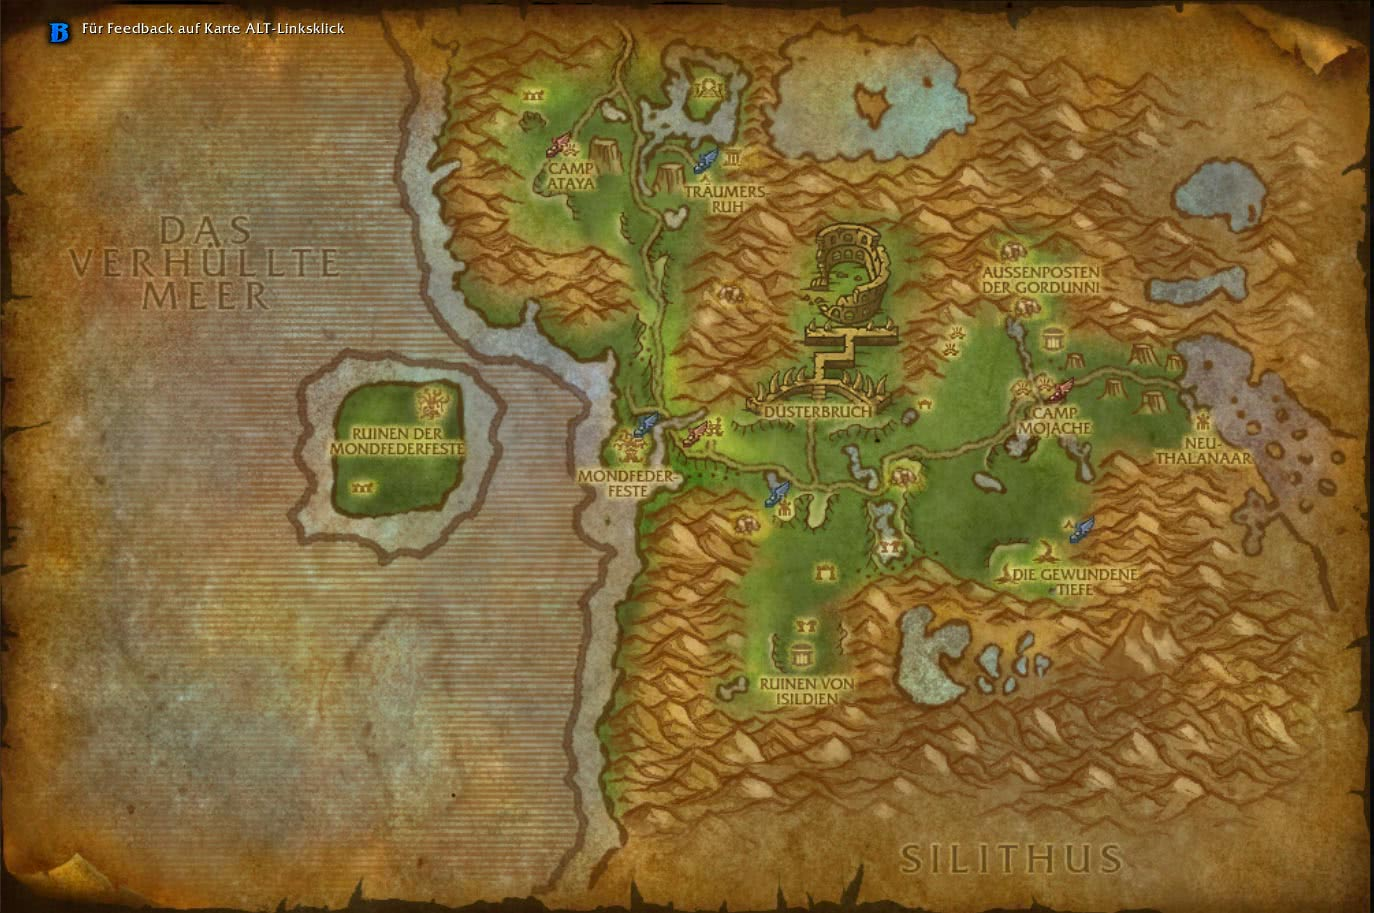 khaz modan map, mulgore map, azuremyst isle map, undercity map, elwynn forest map, darnassus map, duskwood map, ironforge map, bloodmyst isle map, darkshore map, tanaris map, kharanos wow map, grizzly hills map, stormwind map, desolace map, darkmoon faire map, zangarmarsh map, silverpine forest map, tirisfal glades map, loch modan map, on dun morogh map